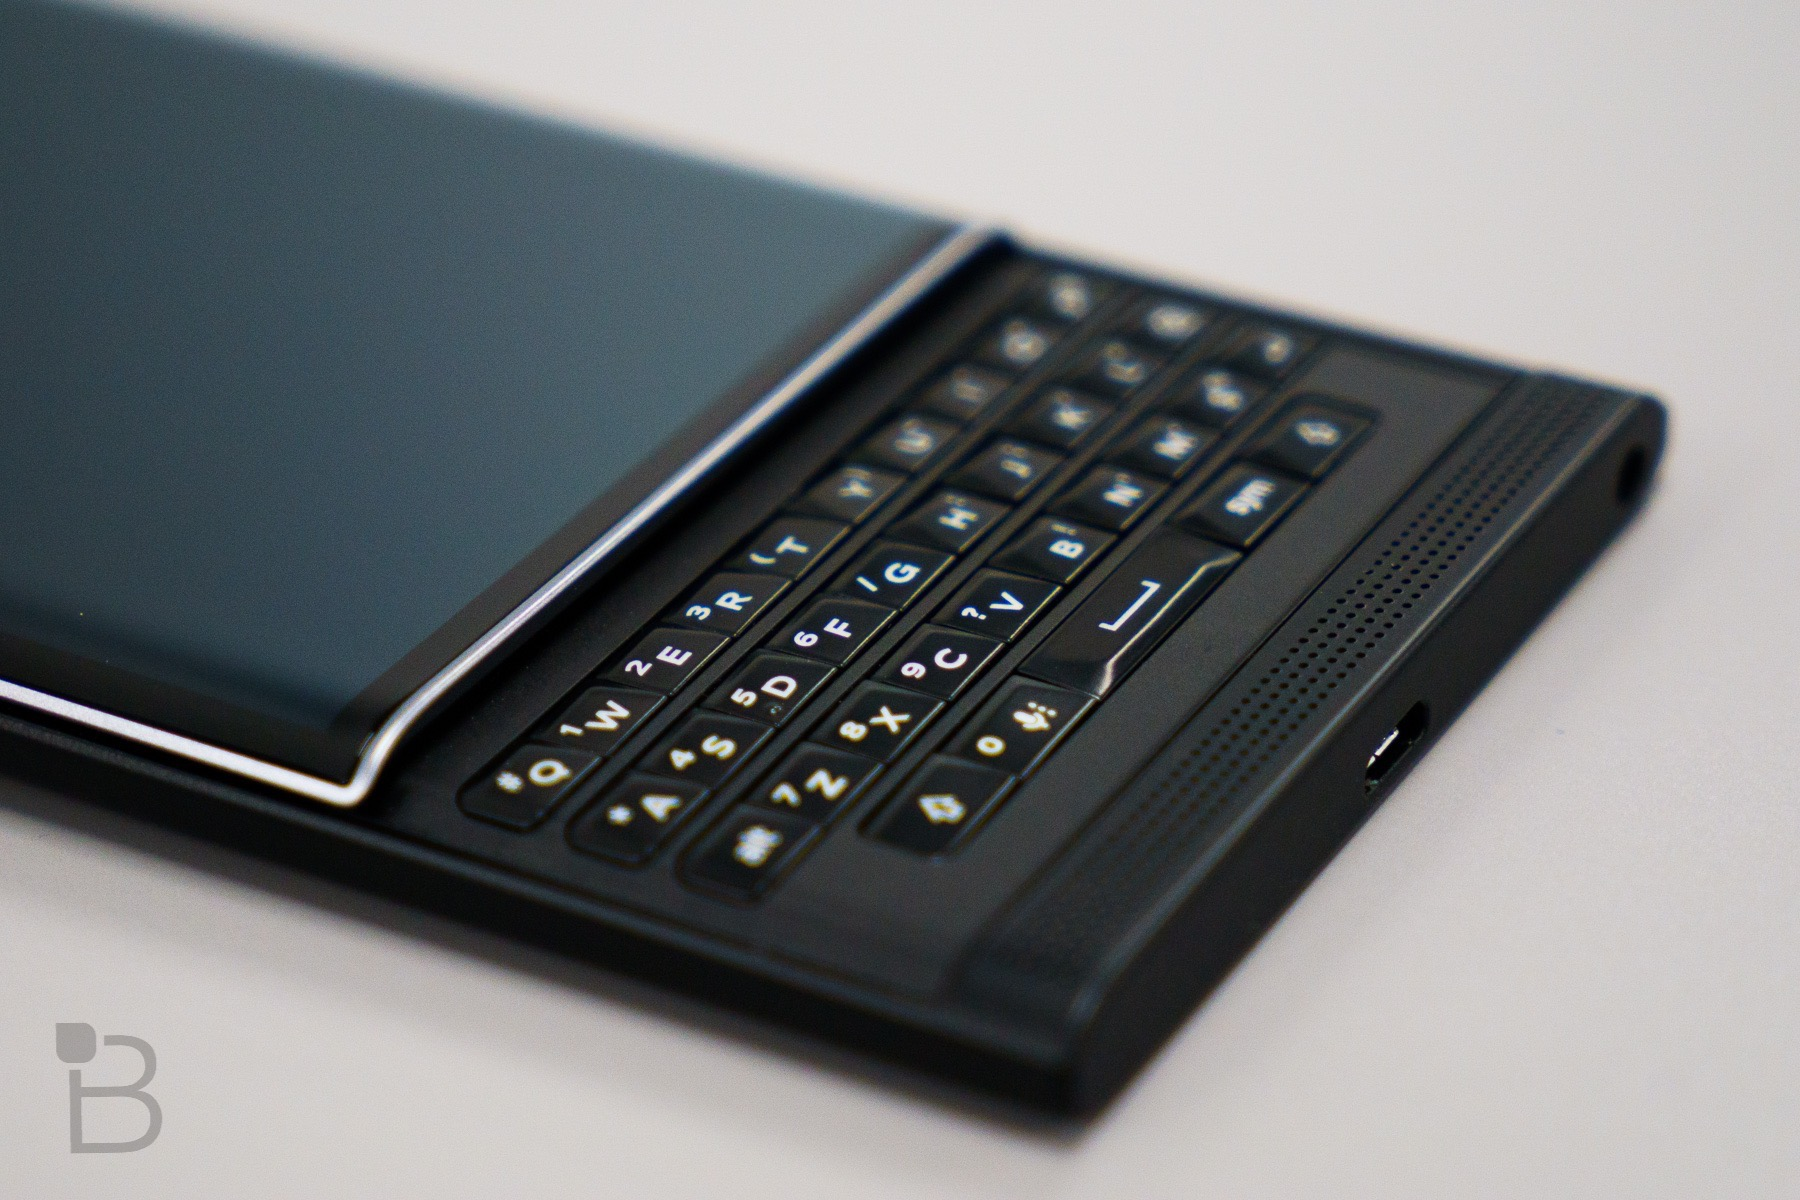 BlackBerry-Priv-11